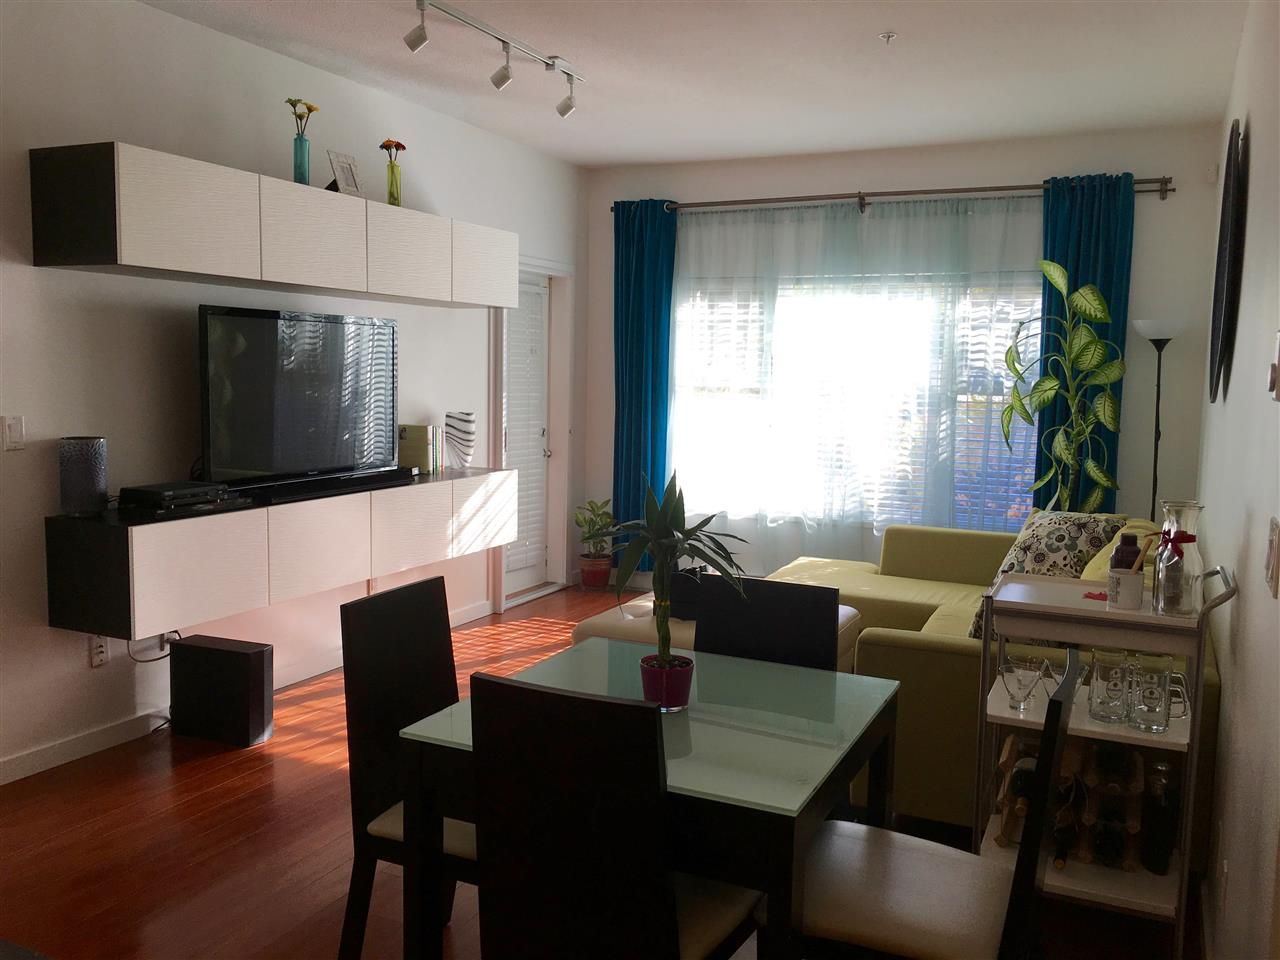 Photo 3: Photos: 106 2488 KELLY Avenue in Port Coquitlam: Central Pt Coquitlam Condo for sale : MLS®# R2216914